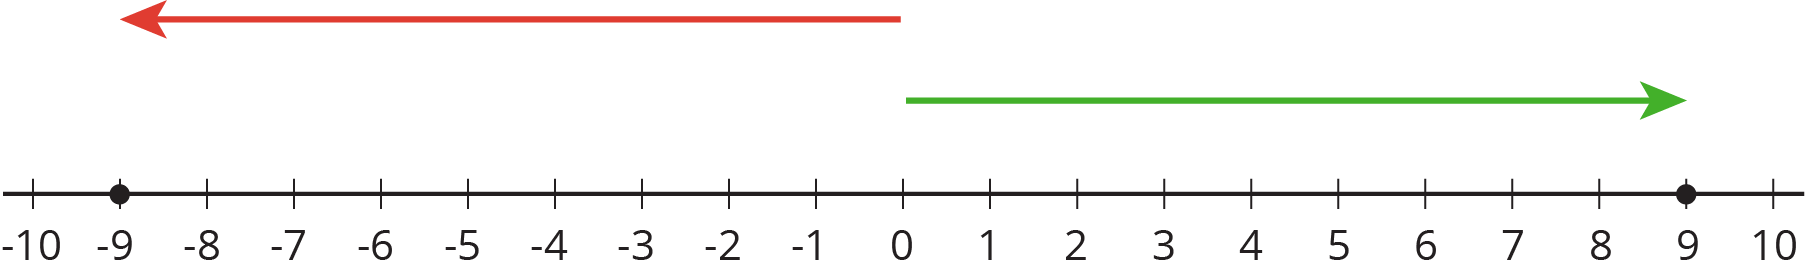 A number line with the numbers negative 10 through 10 indicated. An arrow starts at 0, points to the left, and ends at negative 9. There is a solid dot indicated at negative 9. A second arrow starts at 0, points to the right, and ends at 9. There is a solid dot indicated at 9.